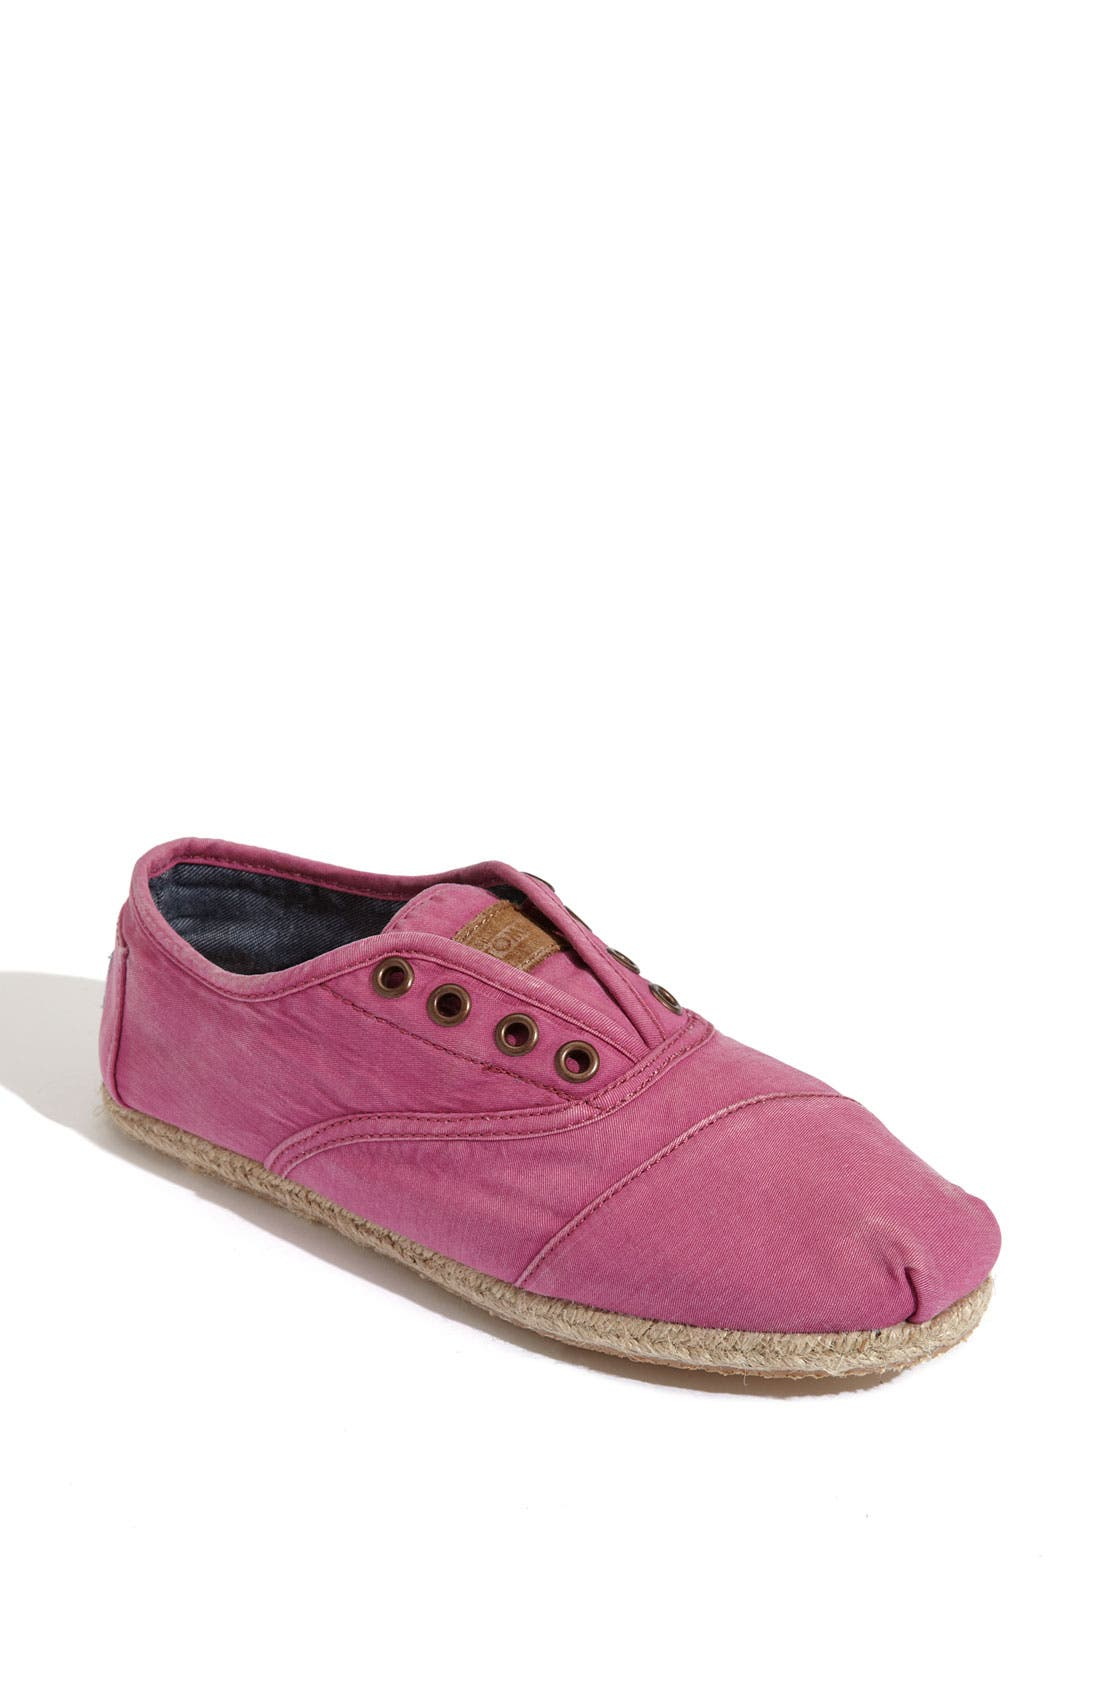 Main Image - TOMS 'Cordones - Ceara' Slip-On (Women)